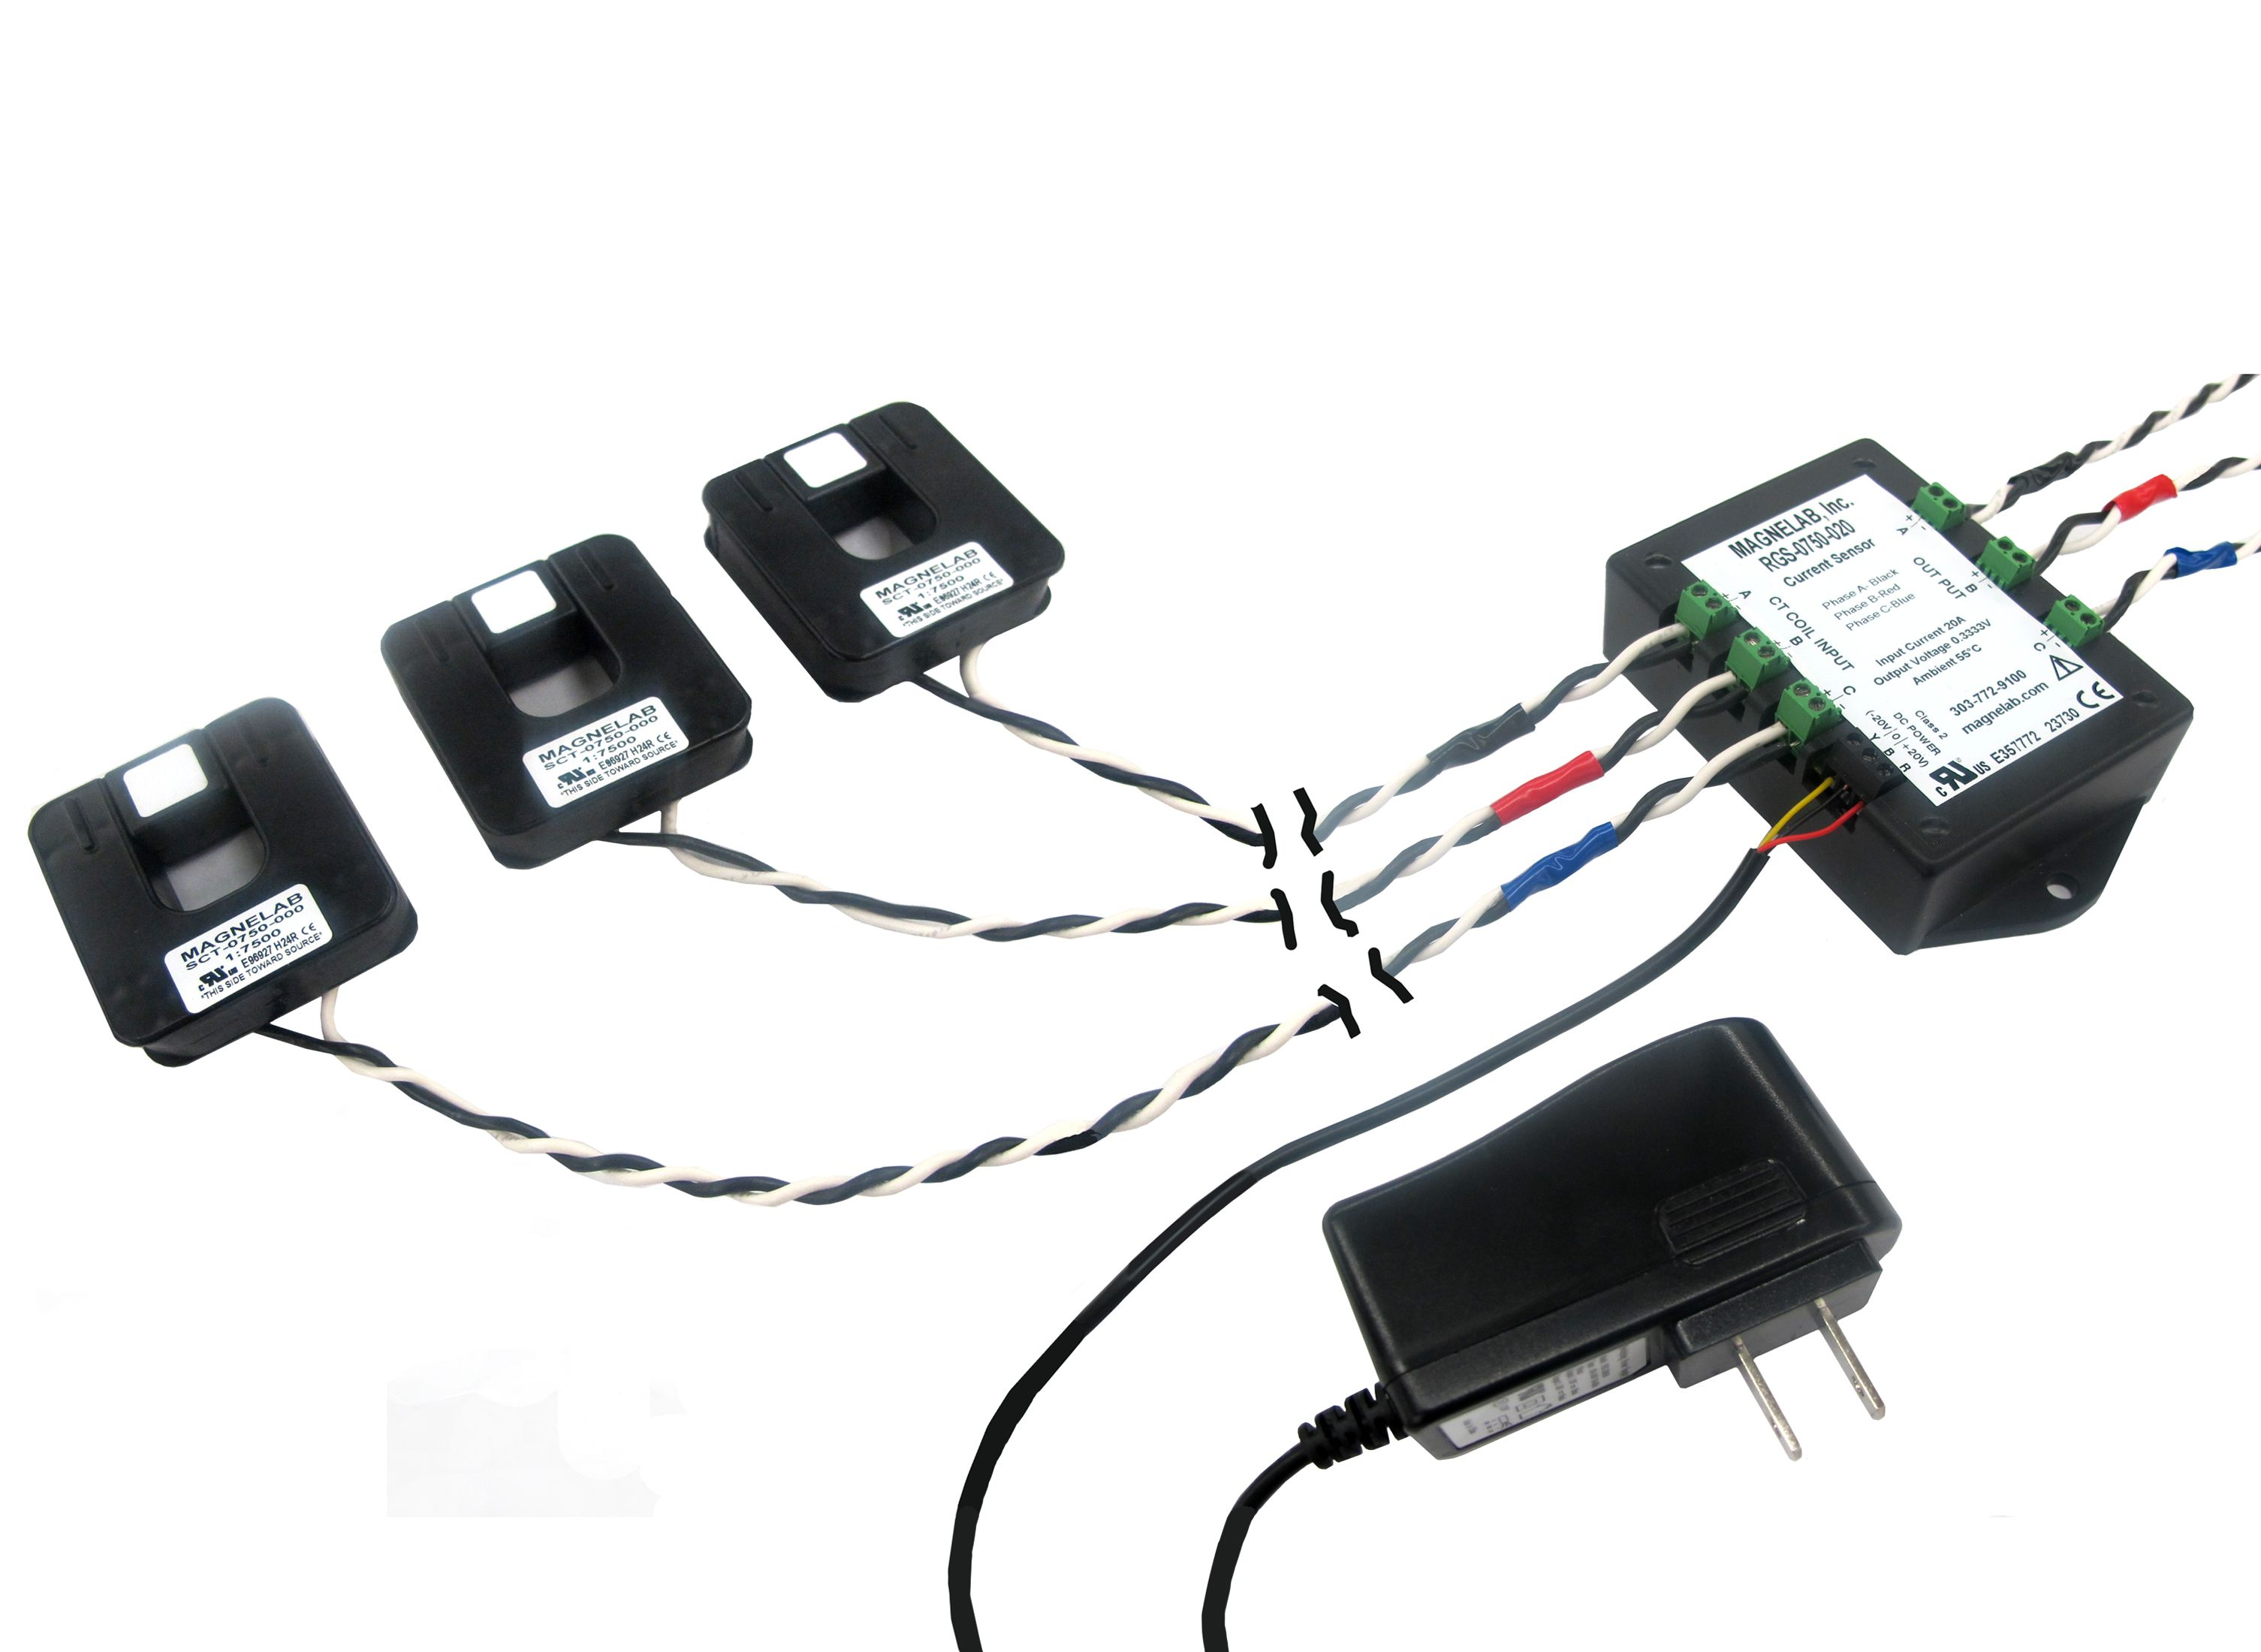 Rgs 0750 Revenue Grade Current Sensor System Magnelab How To Increase Currents Of A Transformer